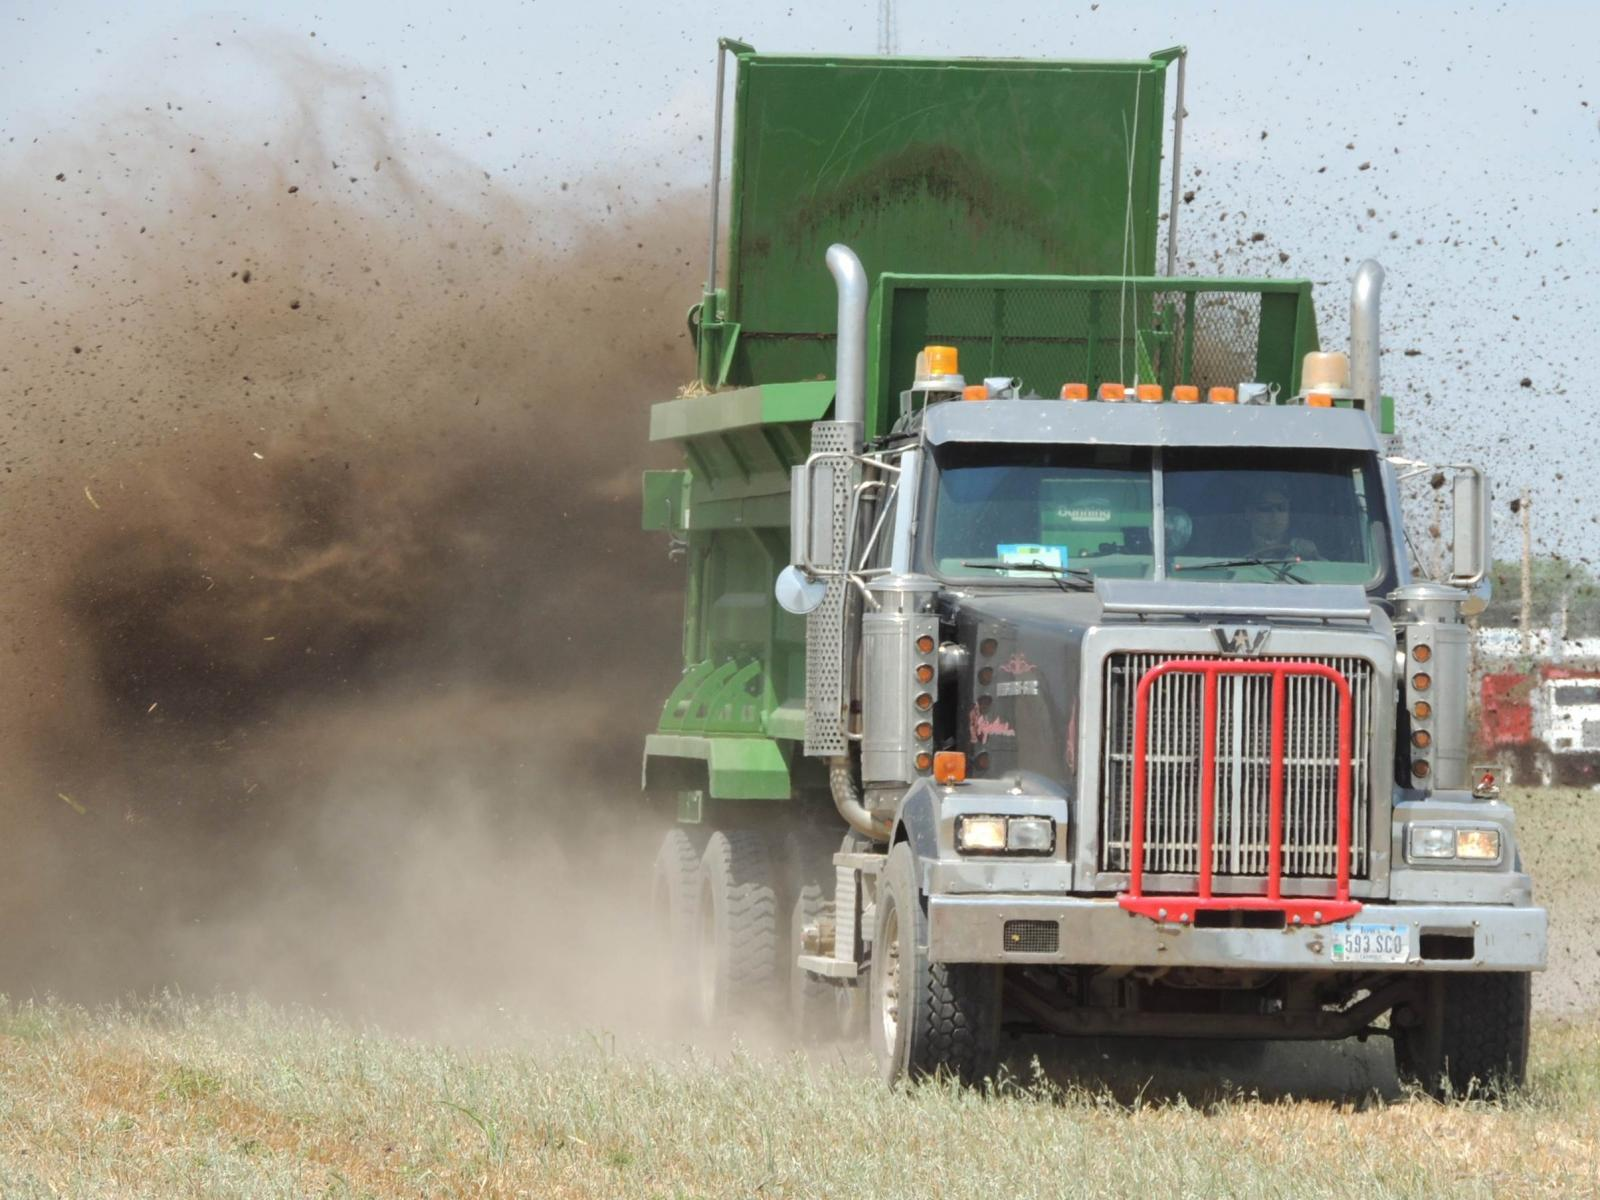 Manure should be applied to fields, and areas within fields, where it will be most beneficial to crop growth.